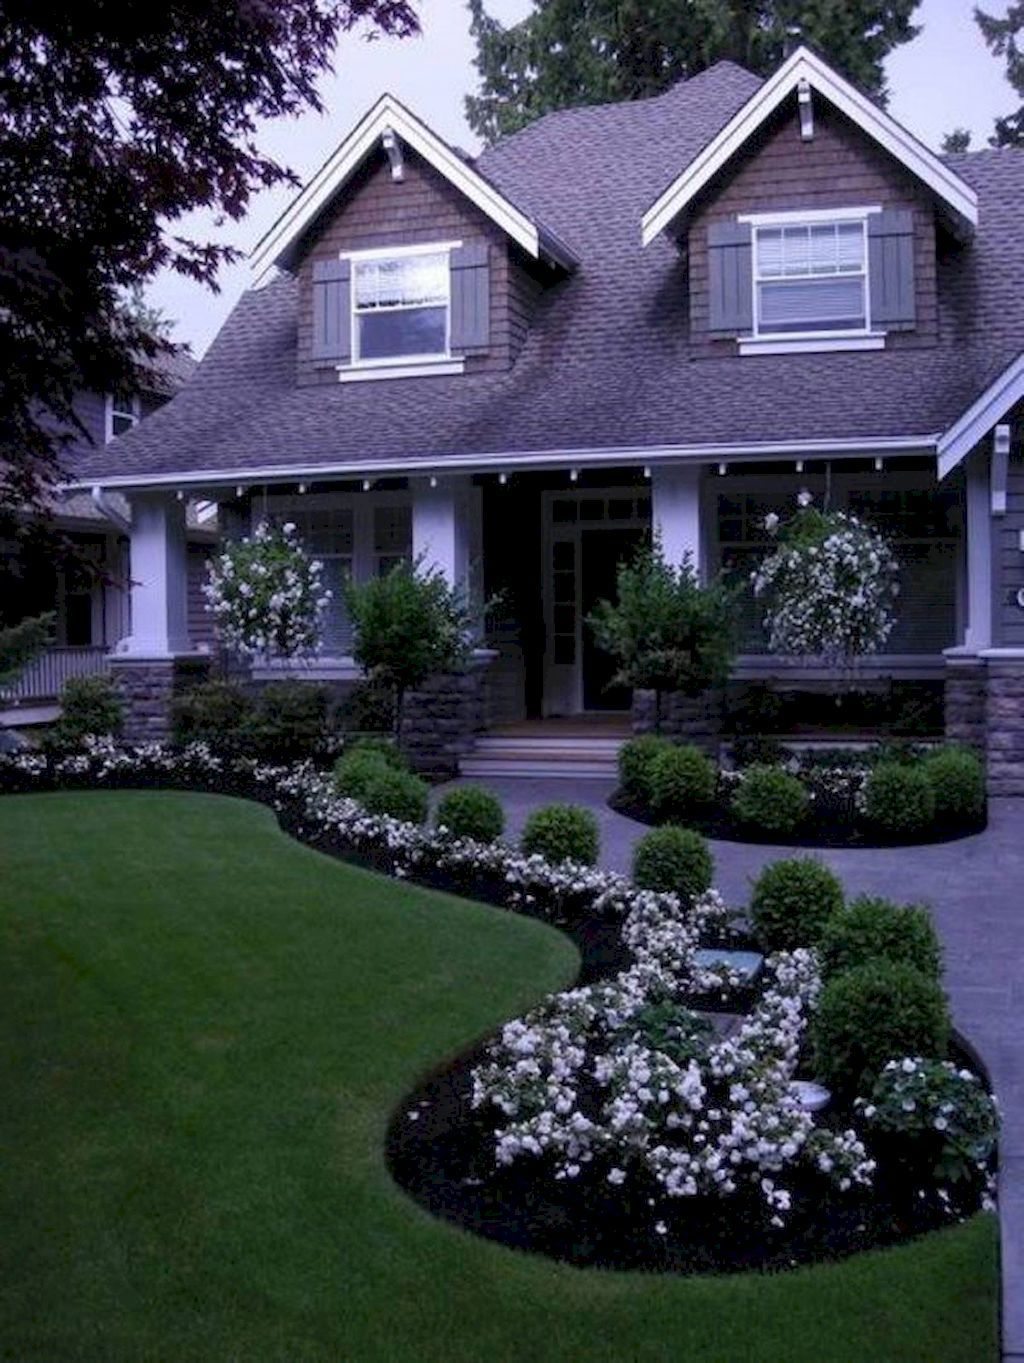 40 beautiful front yard landscaping ideas yard for Front yard landscape design photos